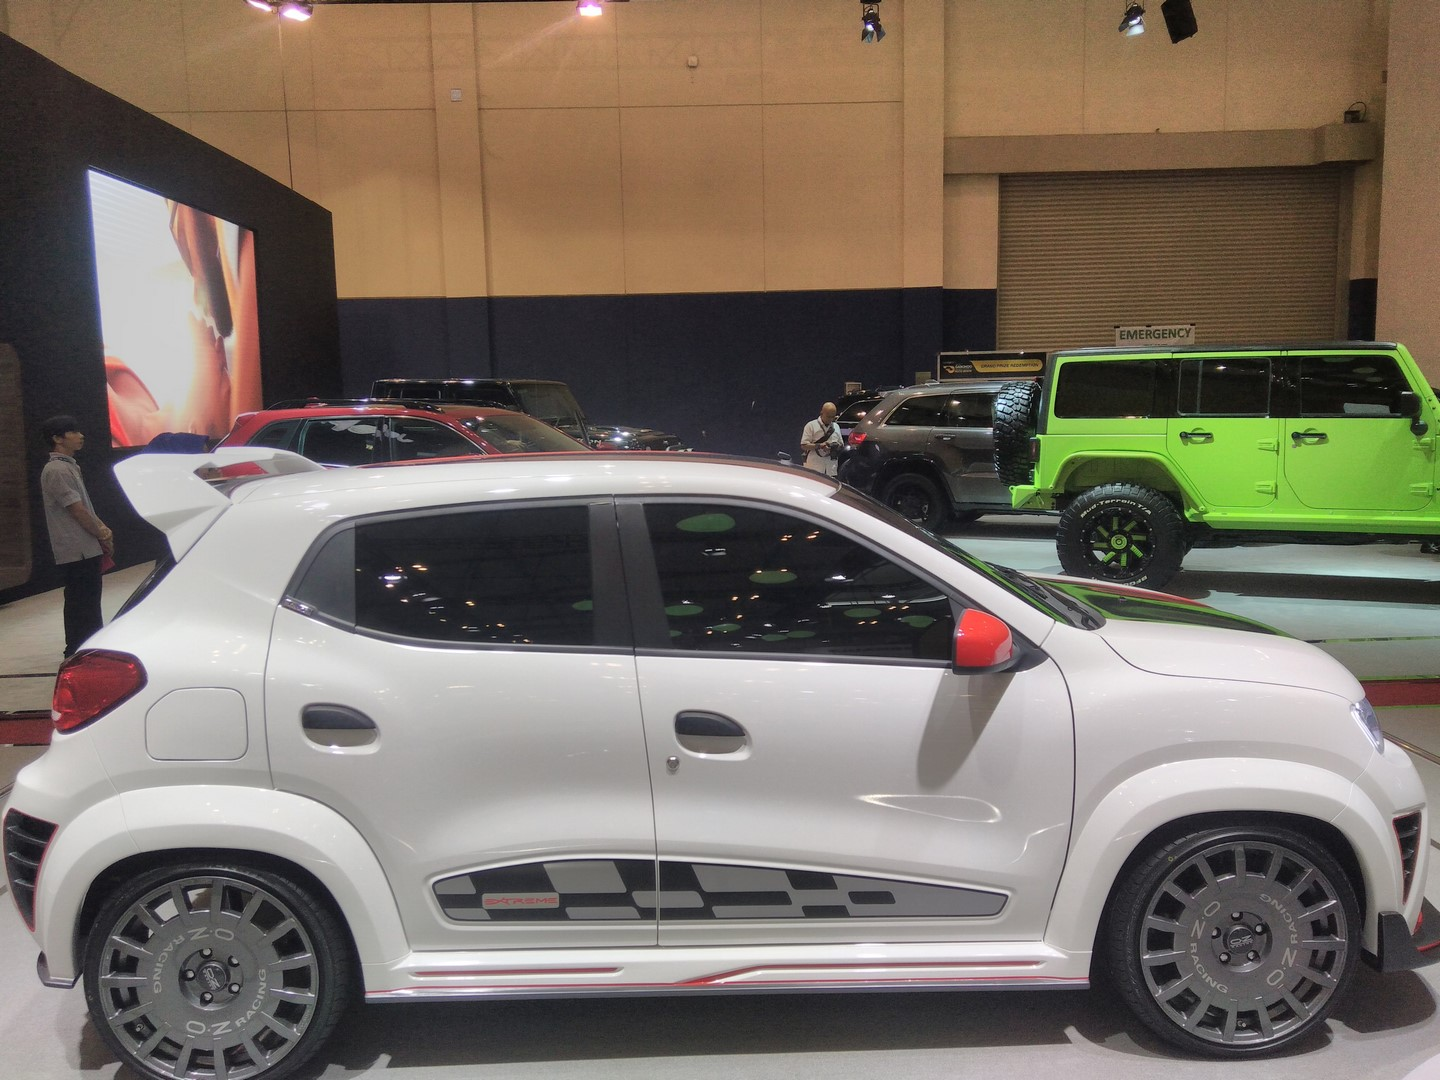 Renault-Kwid-Extreme-at-GIIAS-2017-right-side-view